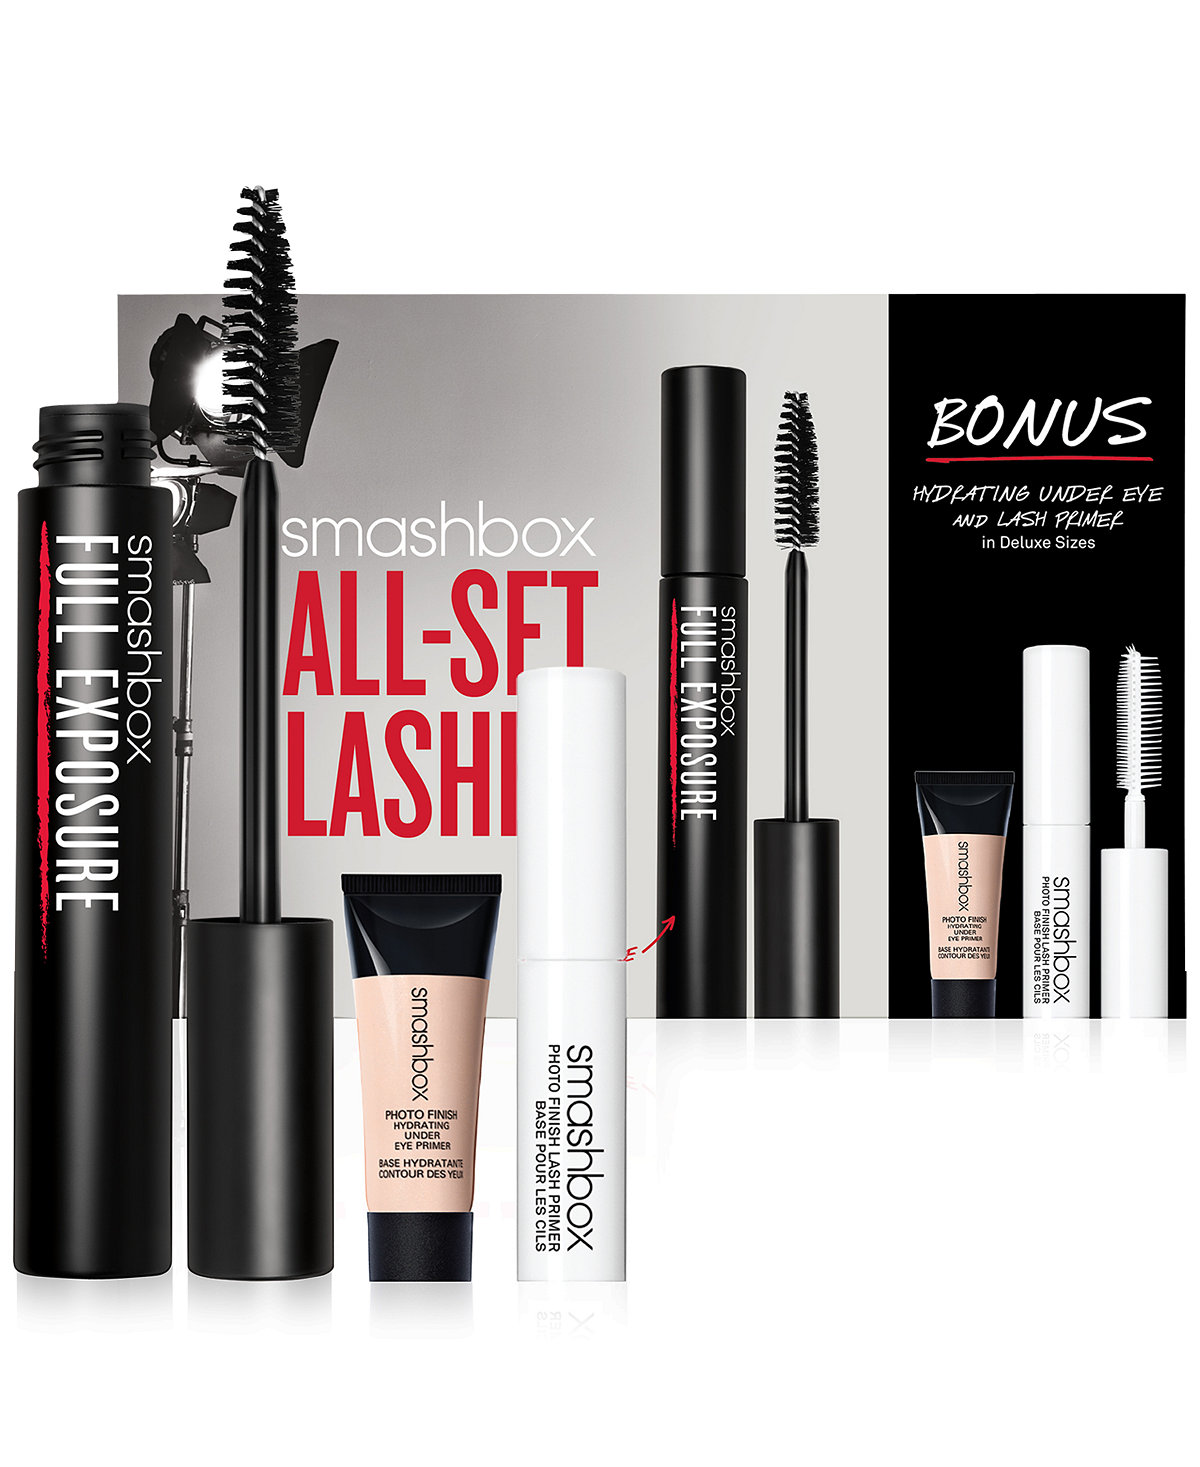 $11 (Reg. $22) Smashbox 3-Pc.